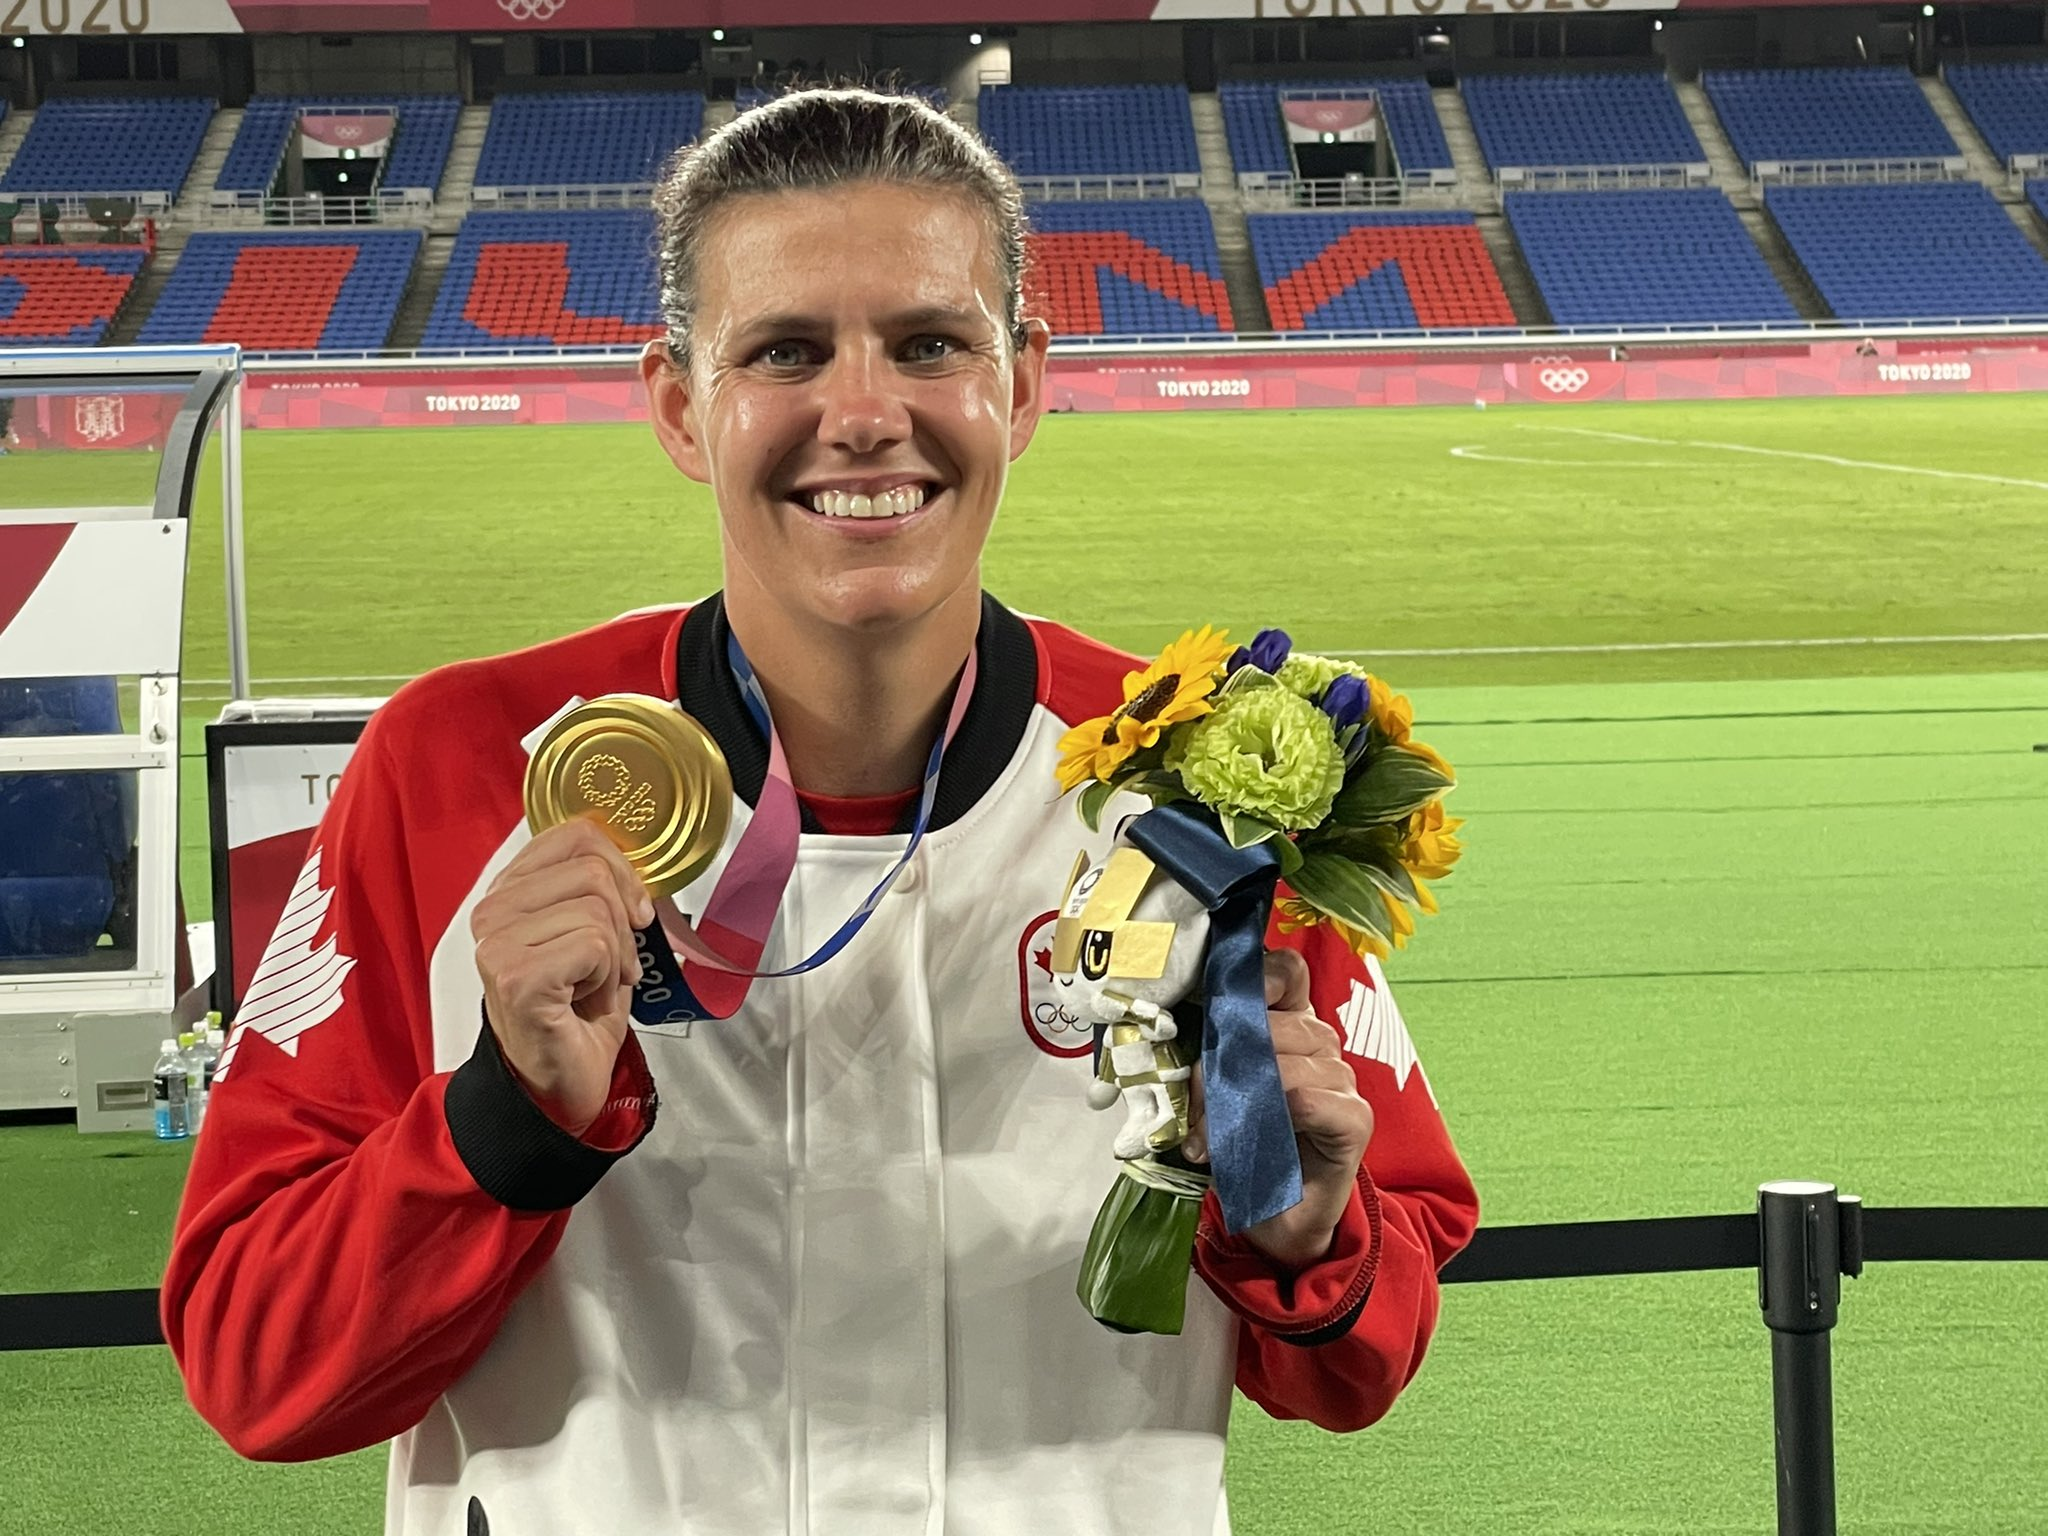 [Image] Christine Sinclair, one of the best players in women's soccer, is finally an Olympic champion after playing 20 years on the international level